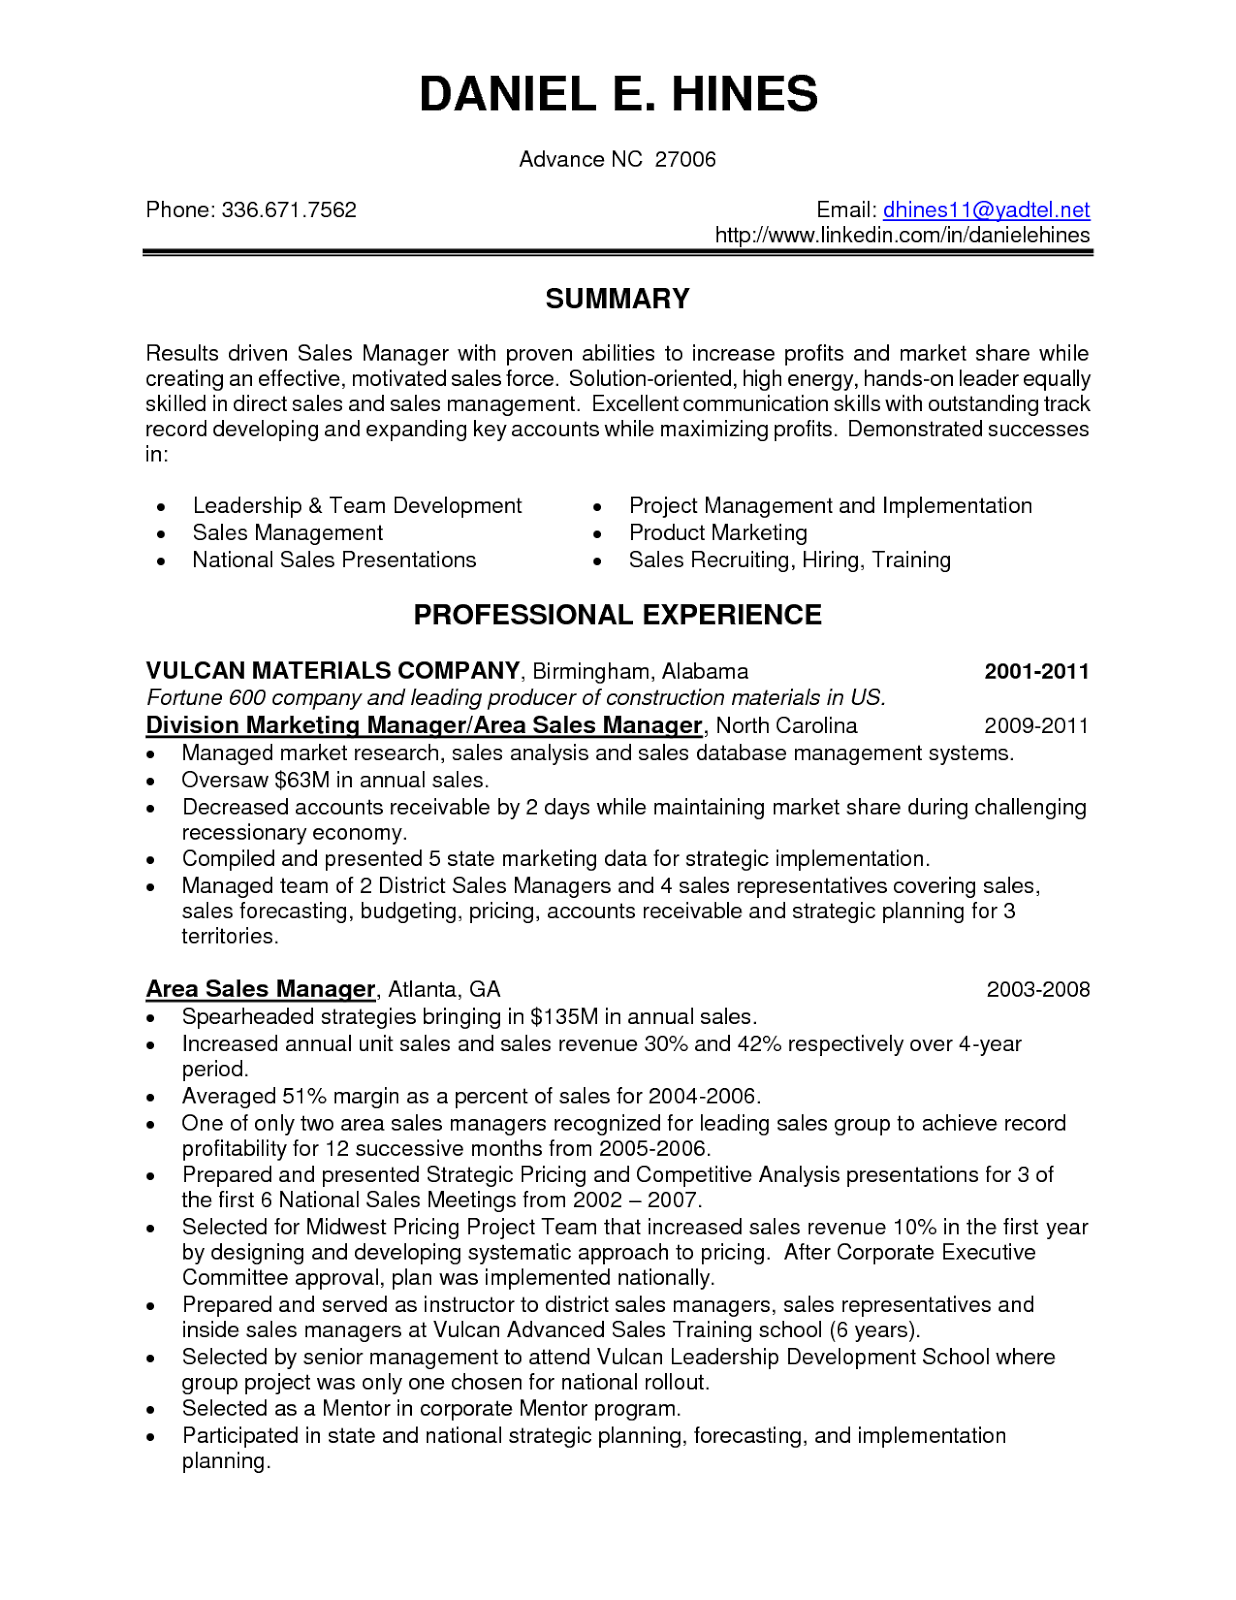 Sale Resume Sample Great Sales Resume Templates Sample Service Resume For  Verizon Wireless Sales Rep Mr